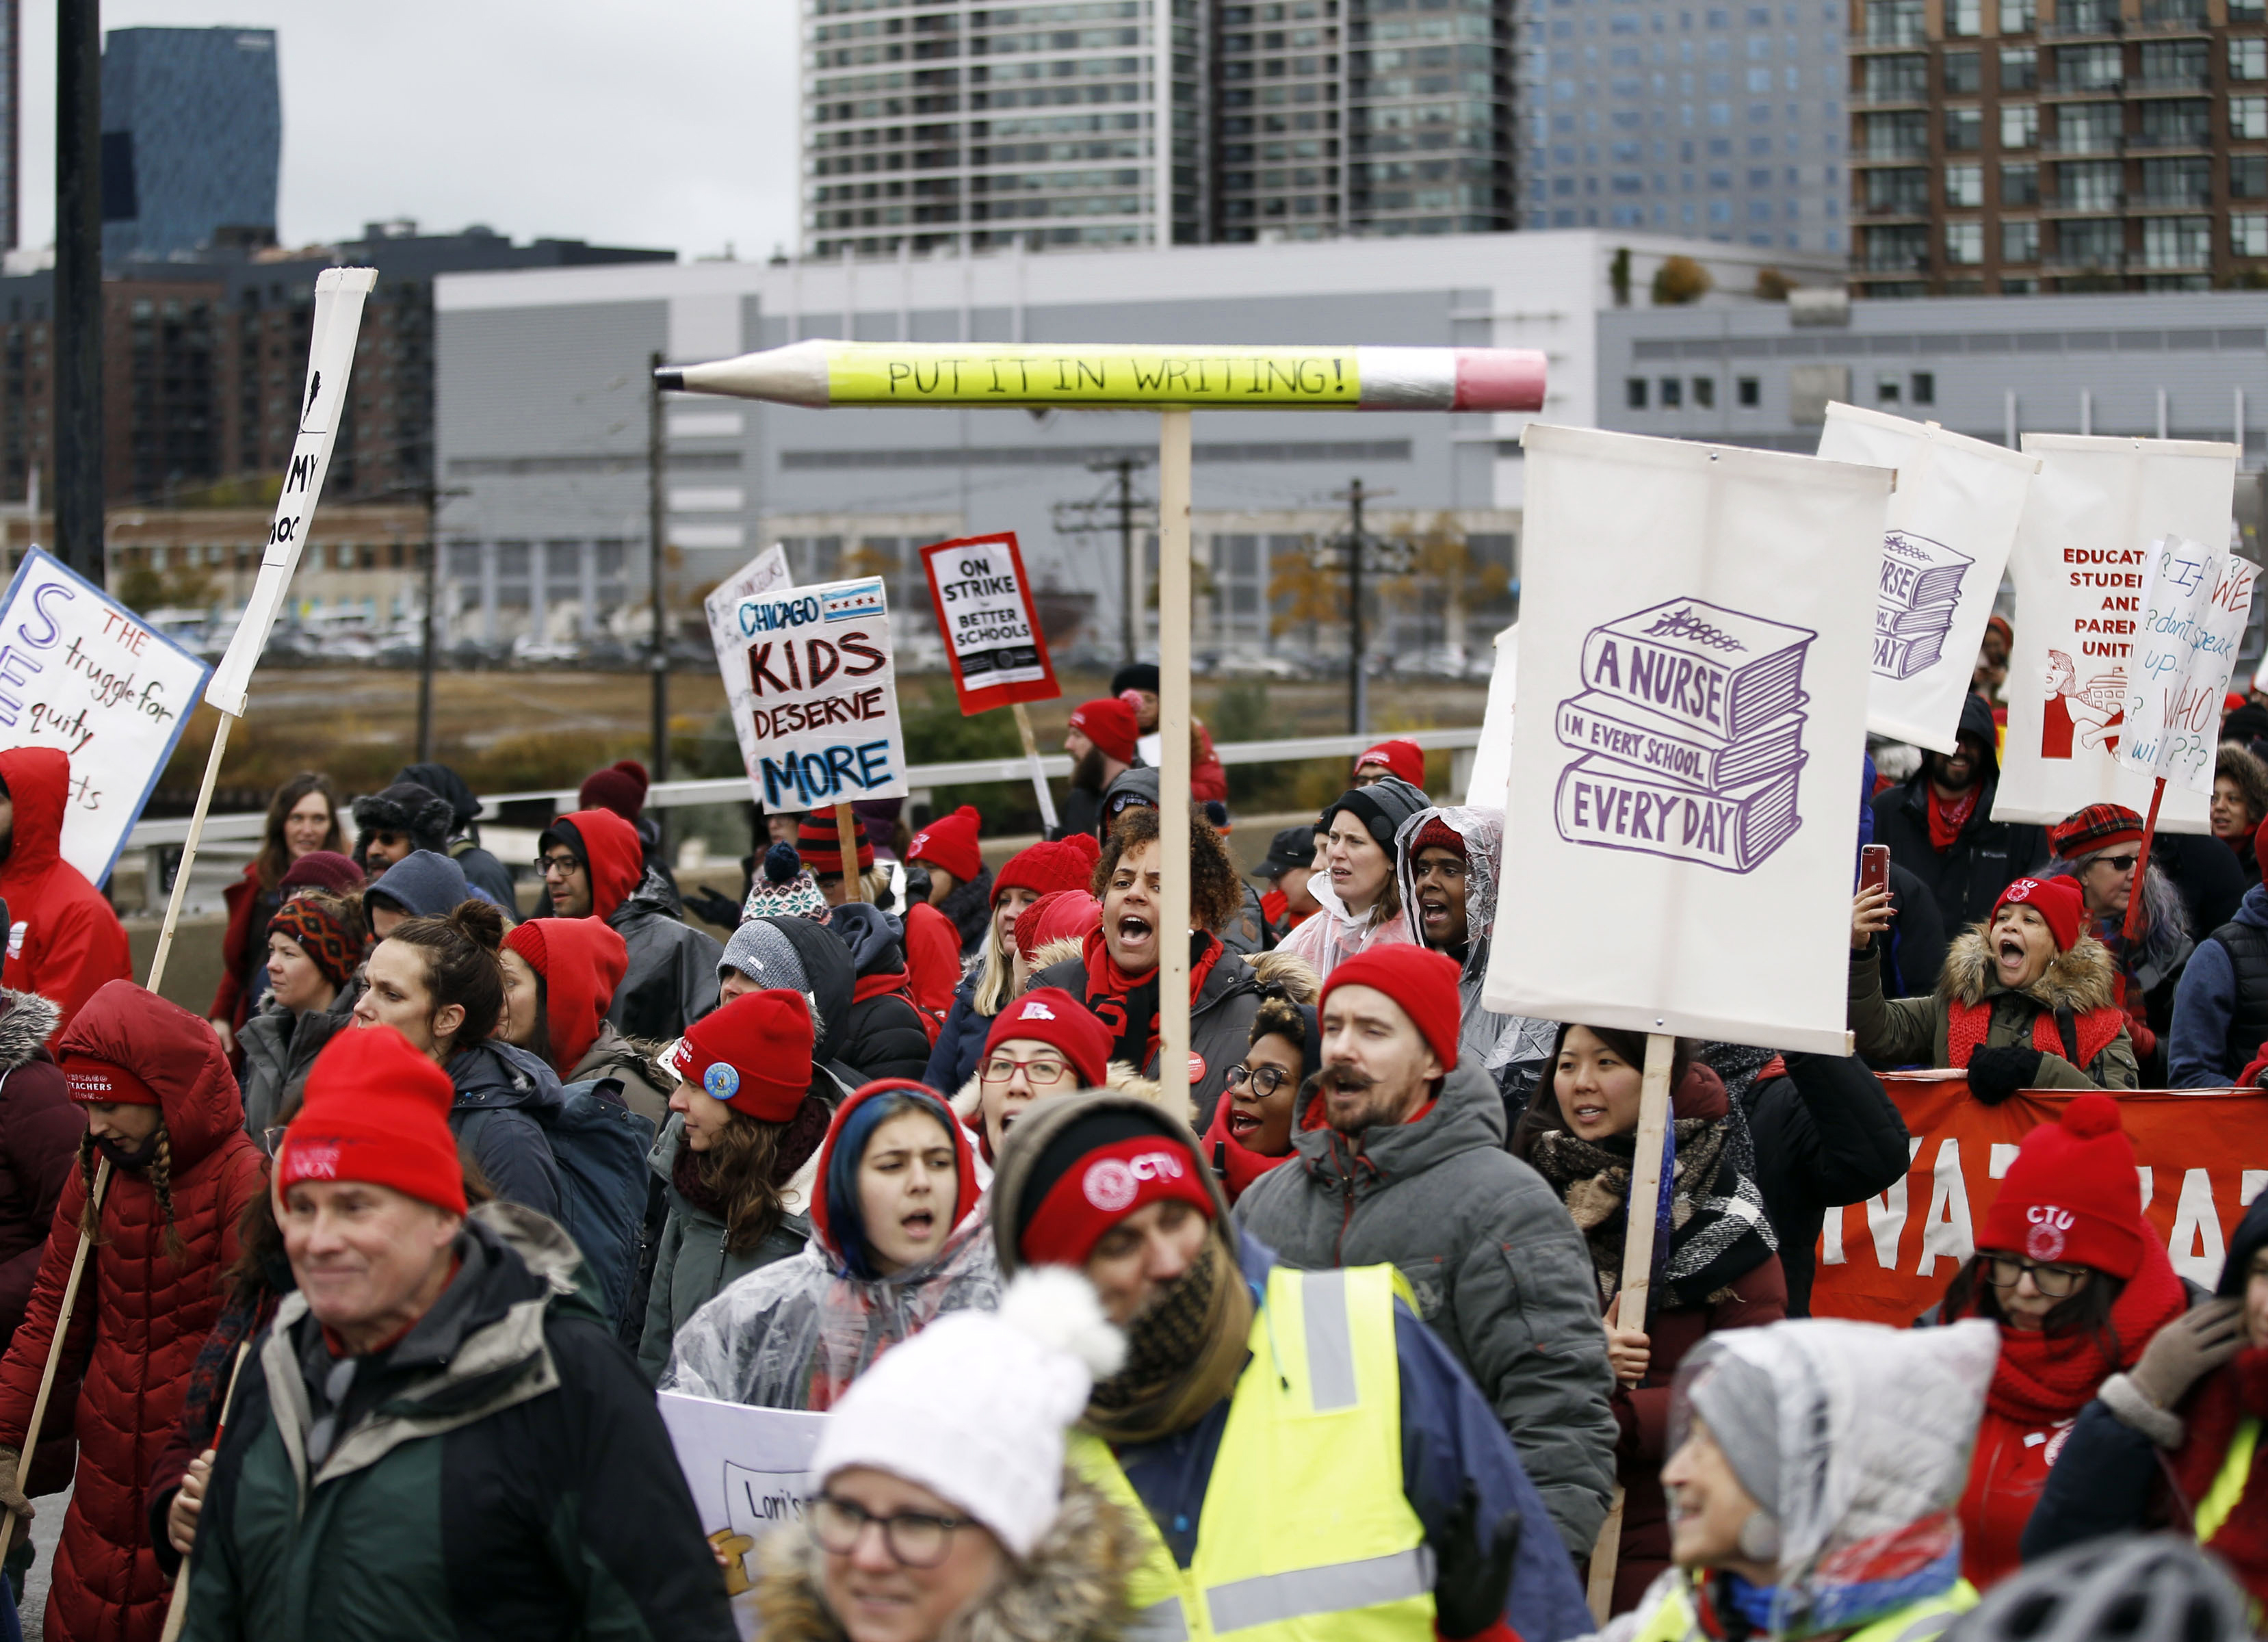 The Chicago Teachers Union rally shut down westbound Roosevelt Road, Wednesday, Oct. 30, 2019, in Chicago. (Kevin Tanaka/Chicago Sun-Times via AP) ORG XMIT: ILCHS332